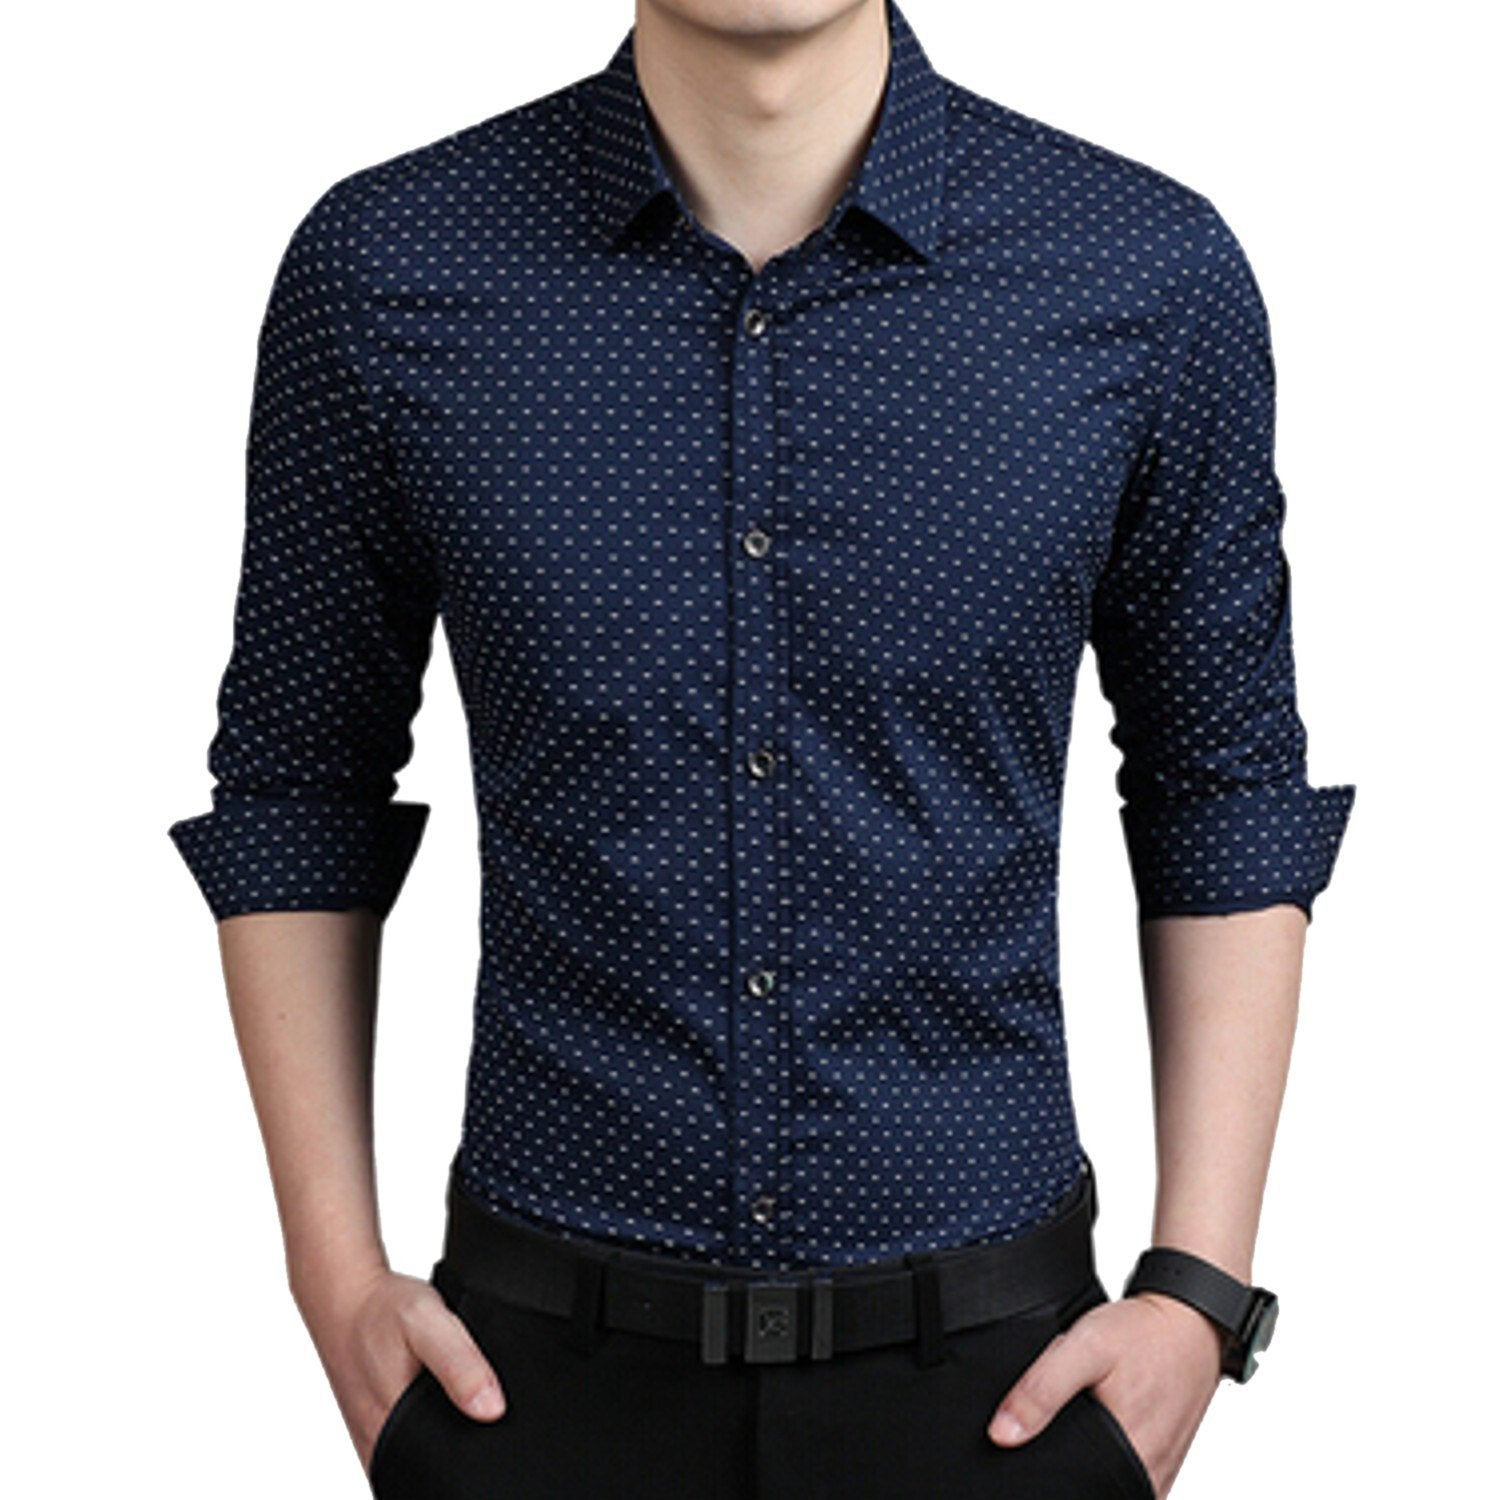 Combo Of 3 Men Shirts With Splash Printed With Long Sleeves